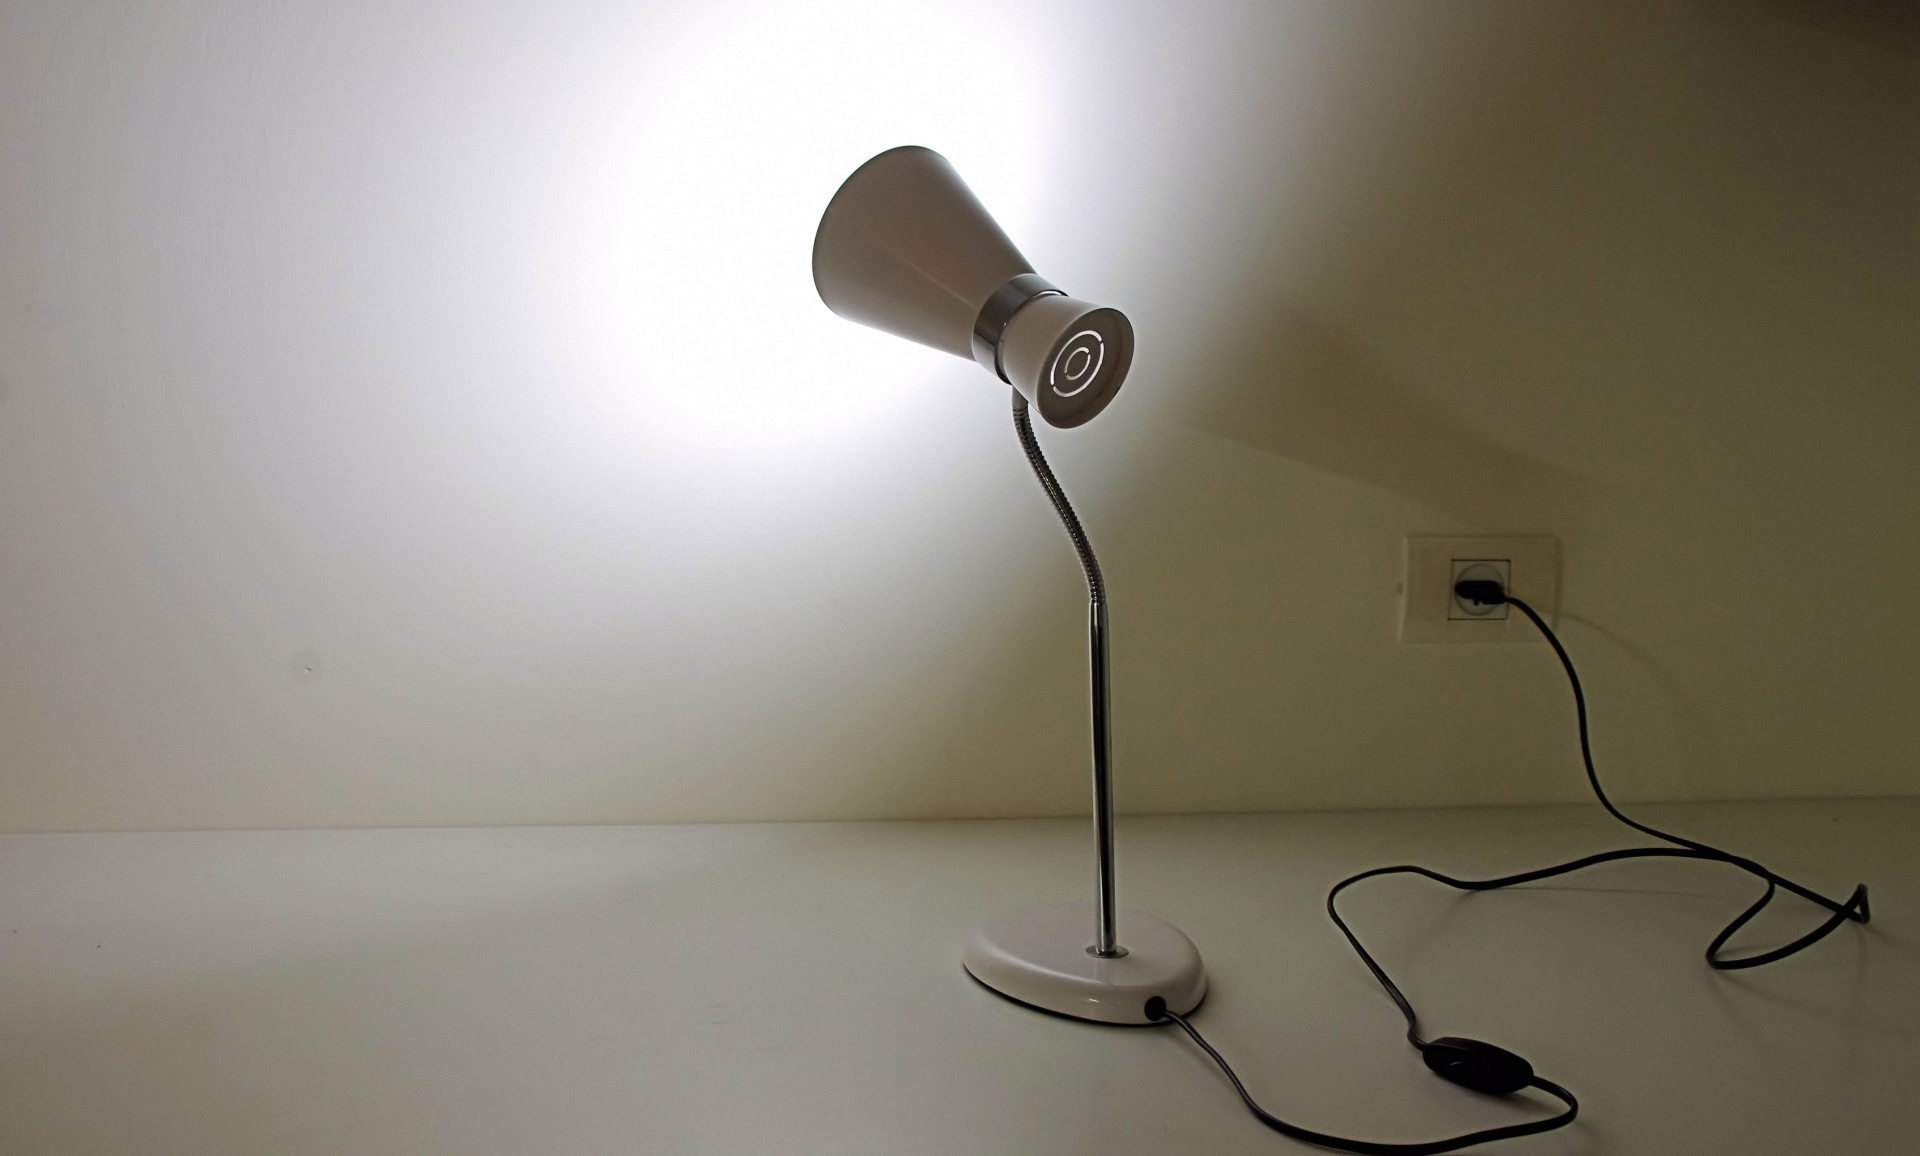 Pixar Desk Lamp Desk Lamp Free Stock Photo Public Domain Pictures